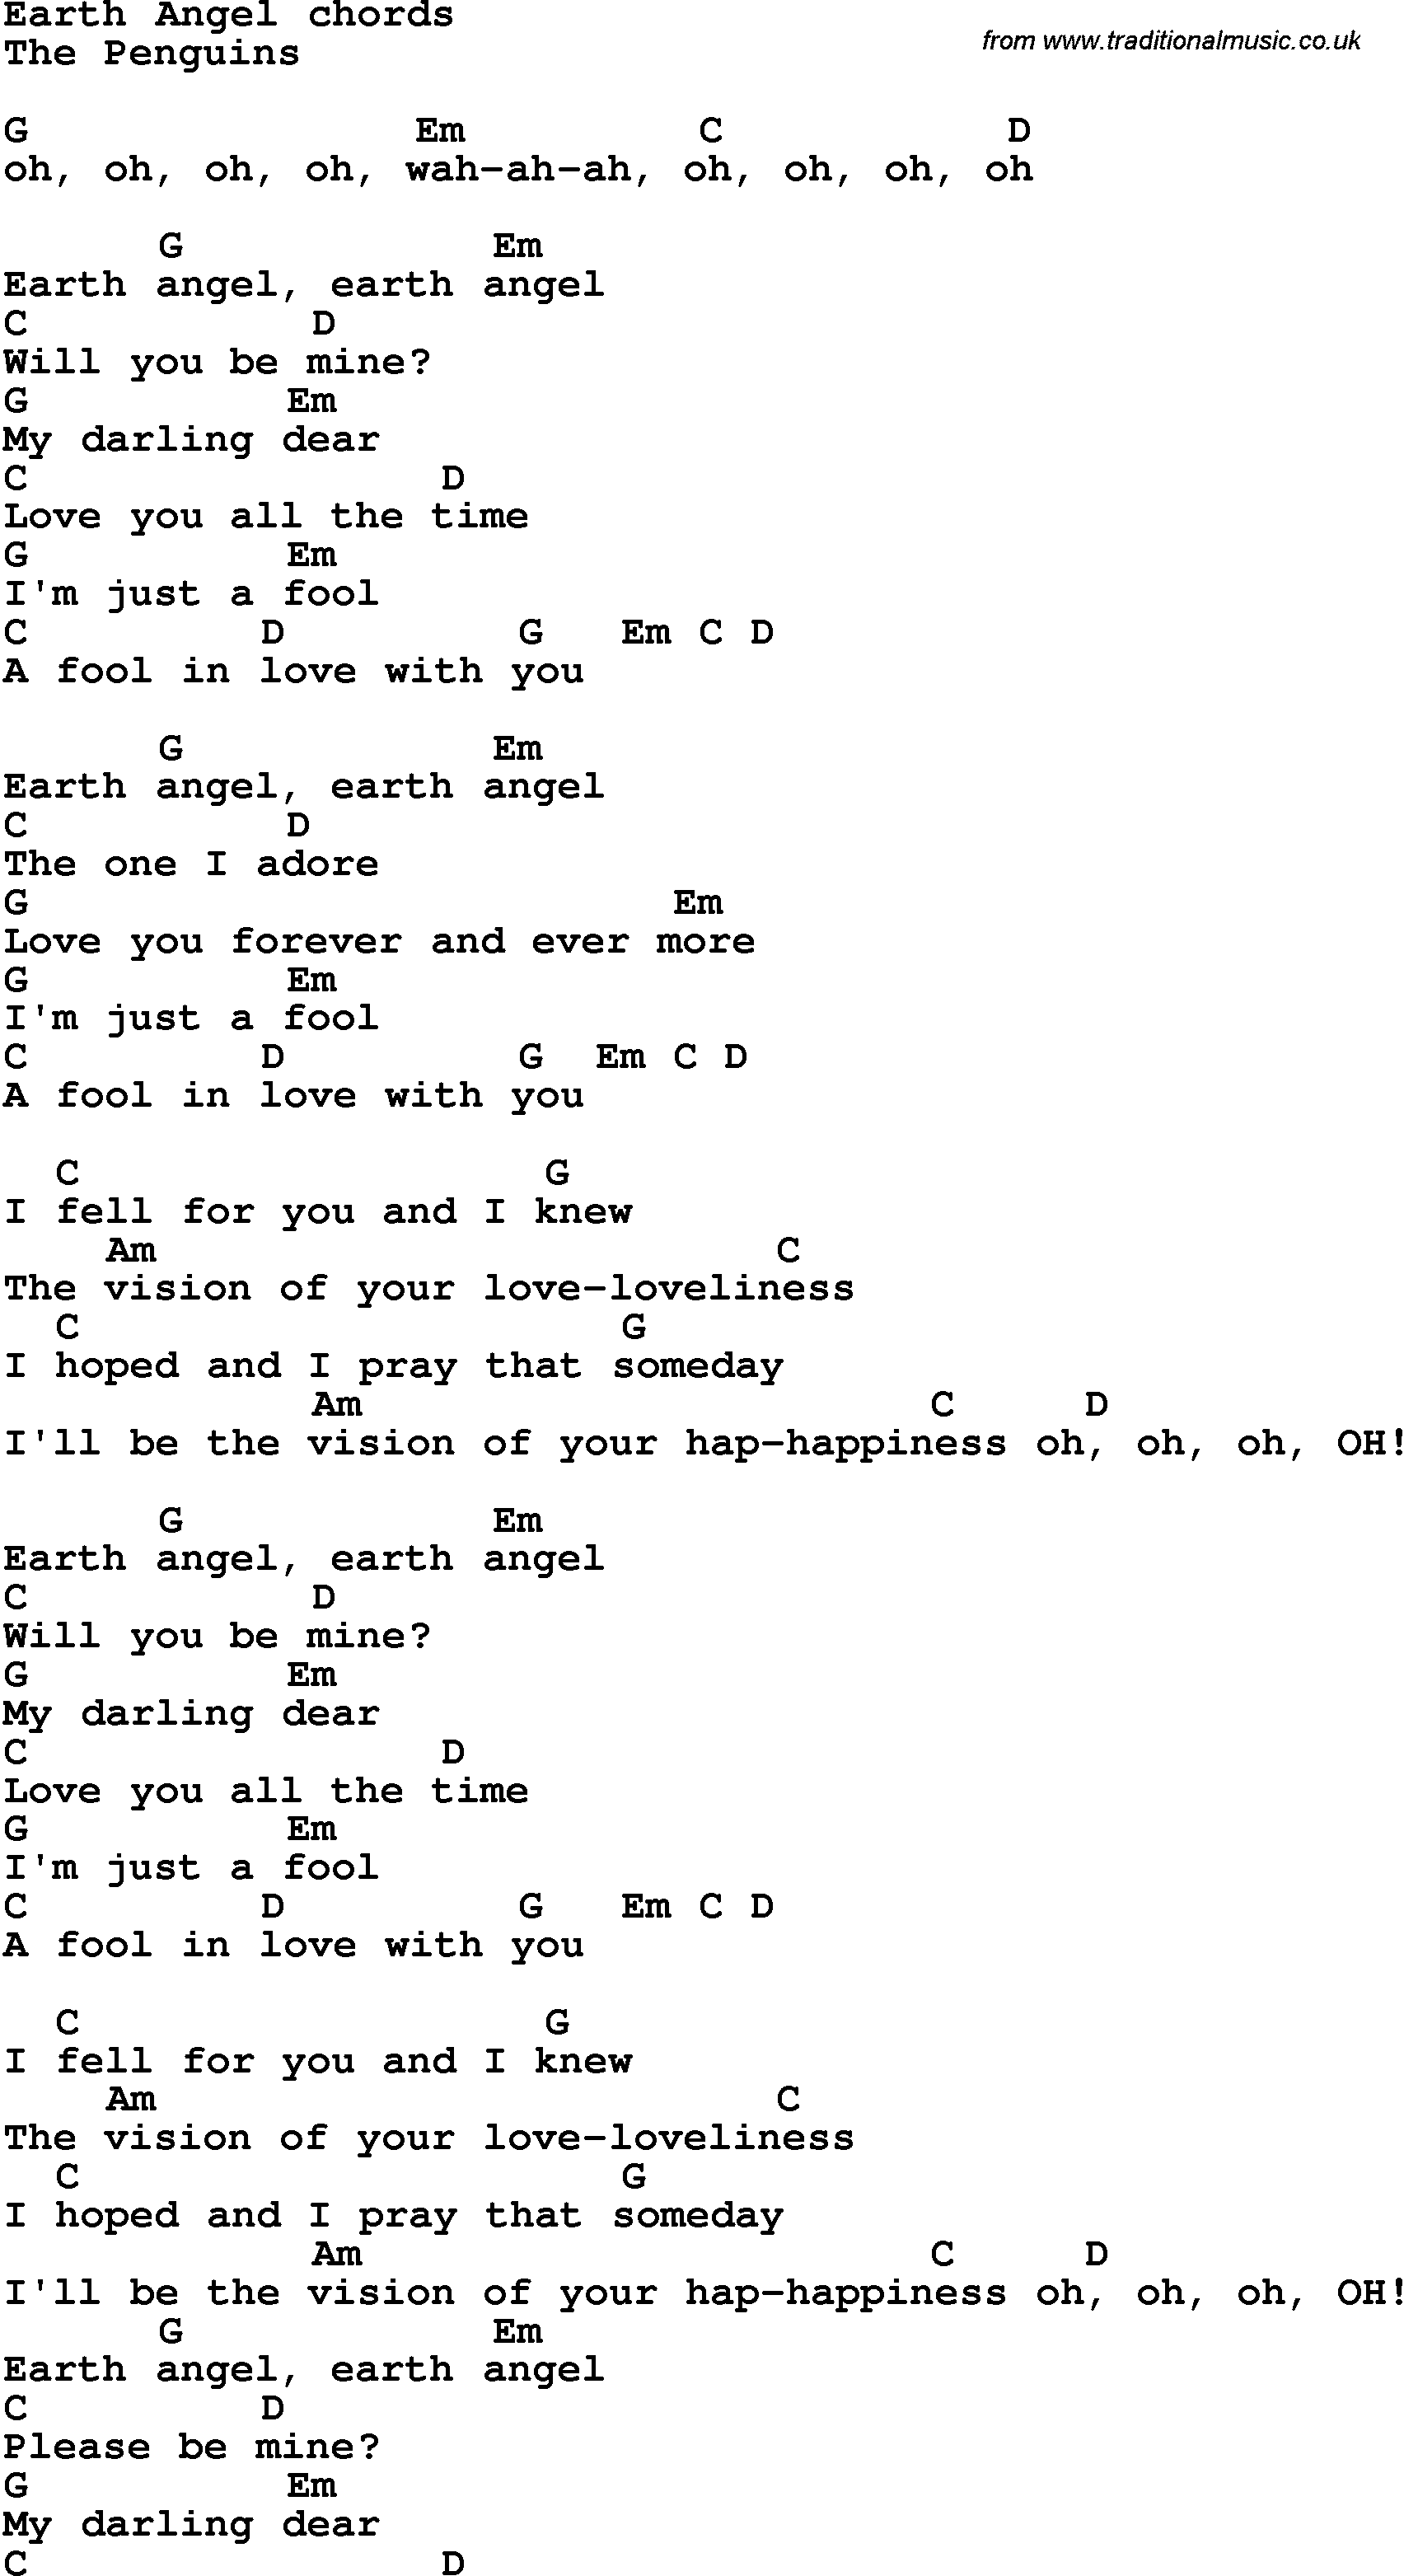 Song lyrics with guitar chords for Earth Angel